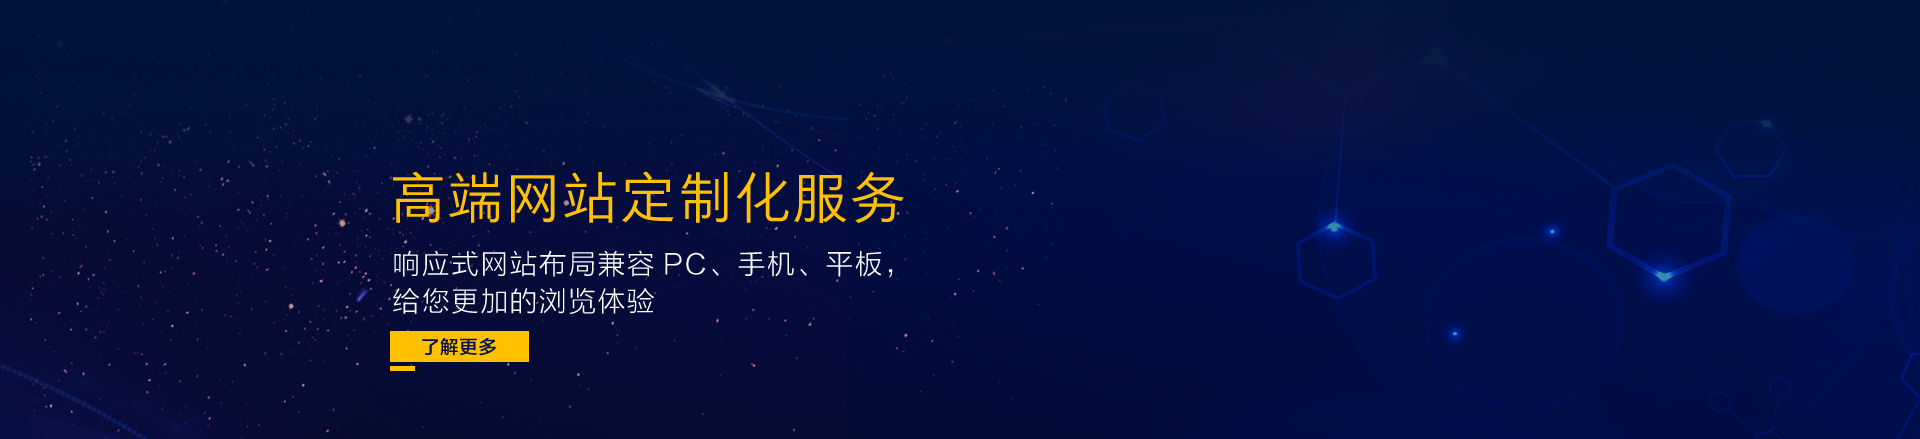 http://www.qy0931.cn/data/upload/202011/20201106173253_324.png